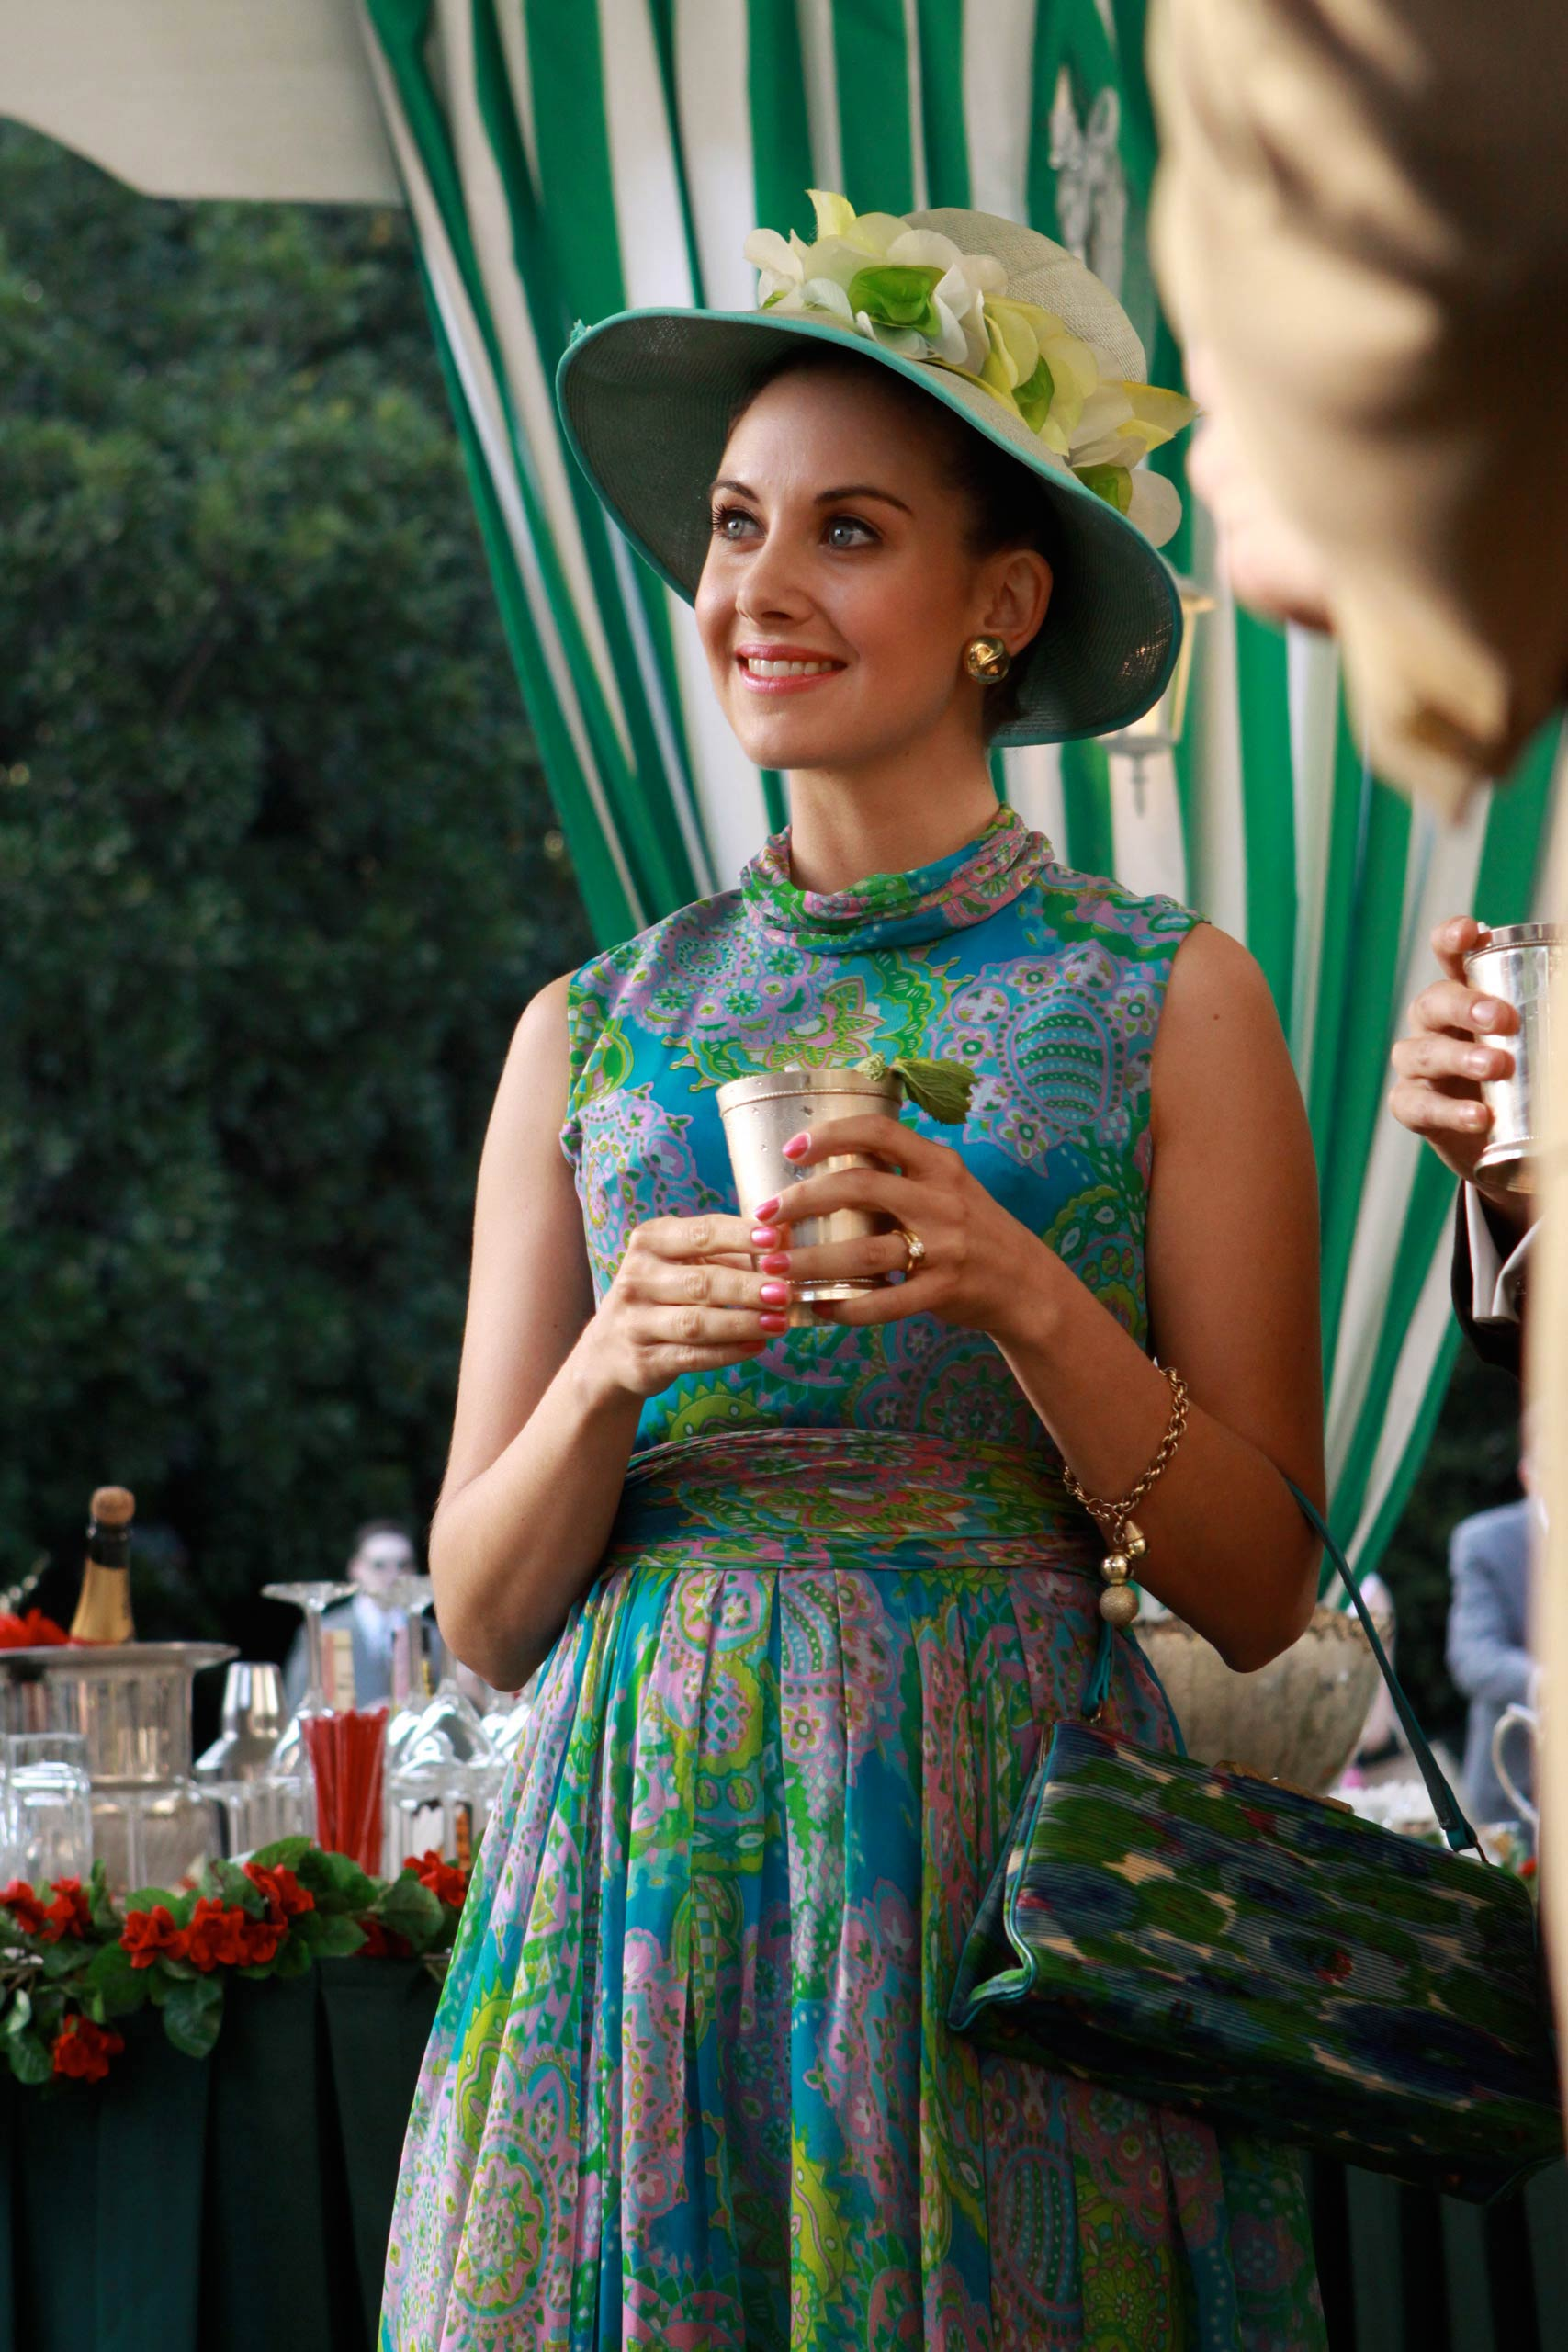 <strong>Trudy's floral dress</strong>                                    Trudy's garden party outfit is put to good use when she and Pete impress guests with a mean performance of the Charleston.